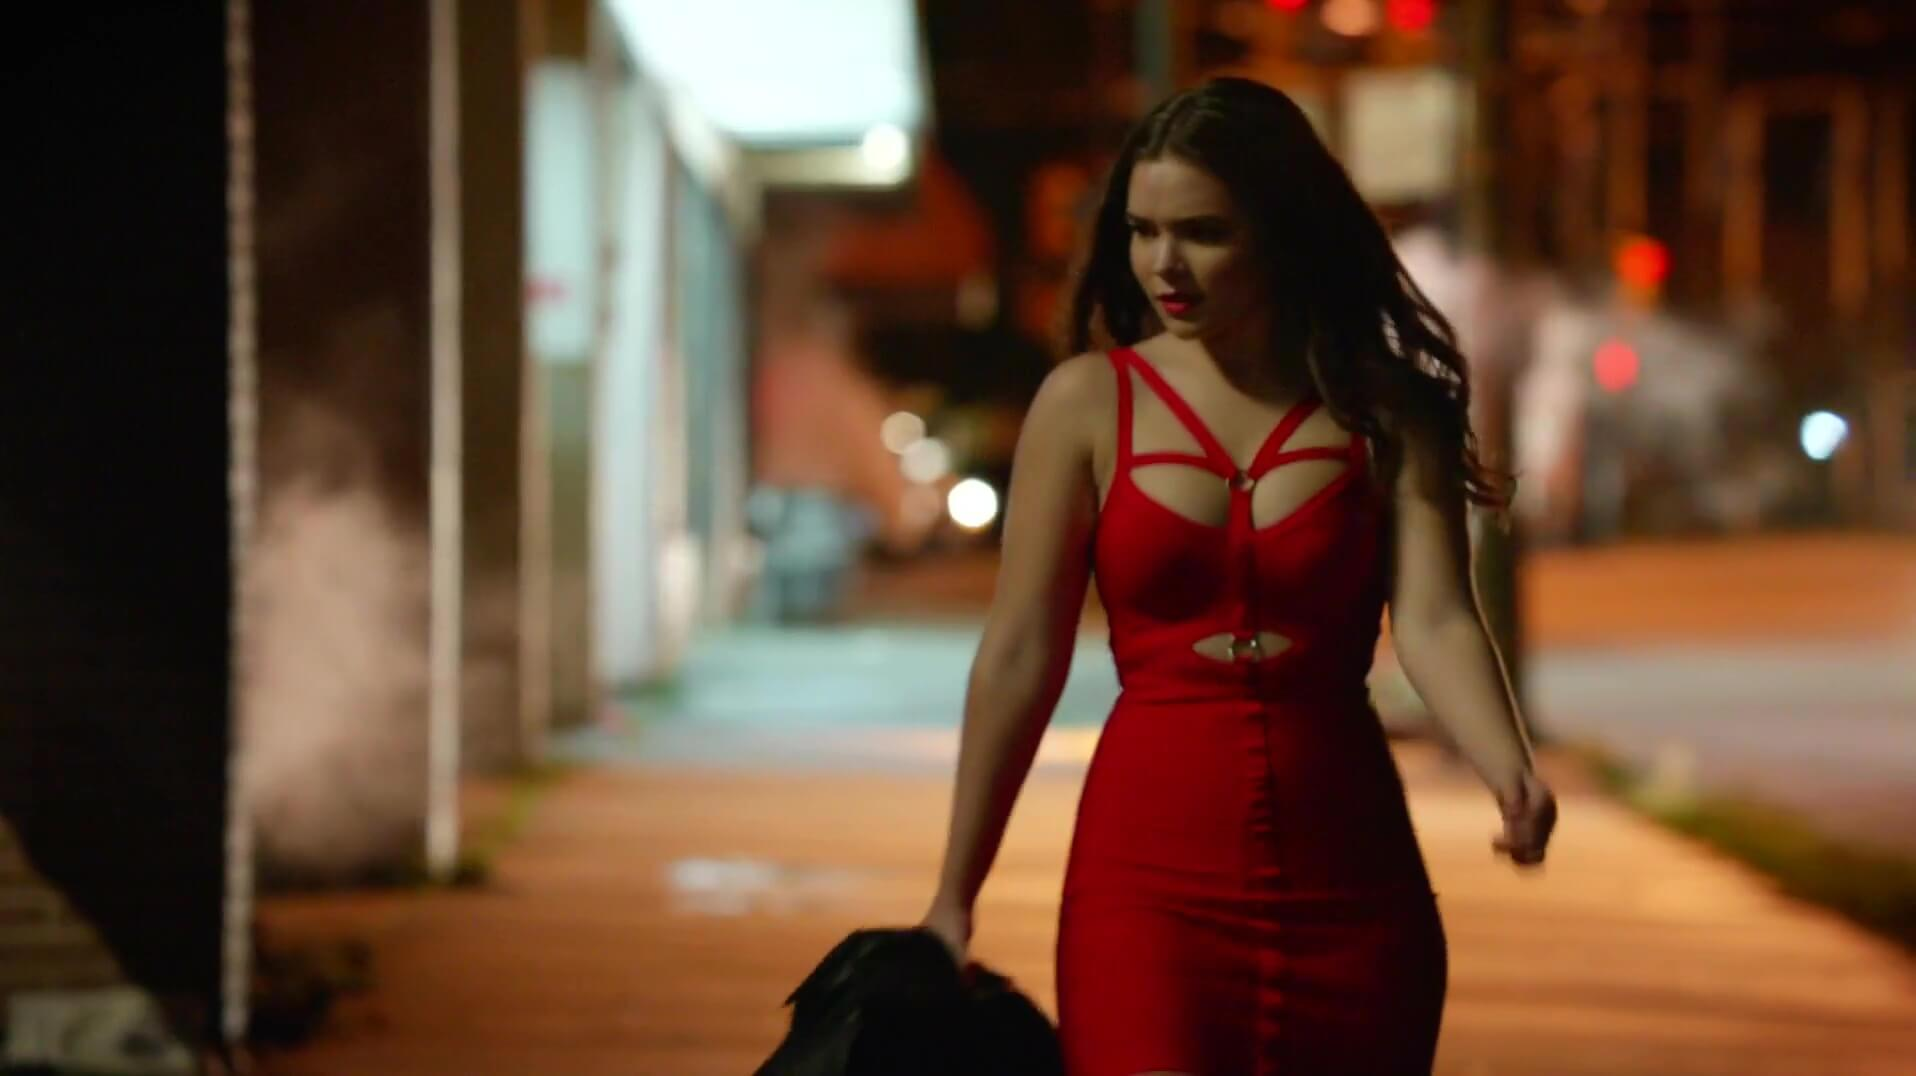 49 Hot Pictures Of Madison McLaughlin Which Expose Her Sexy Body